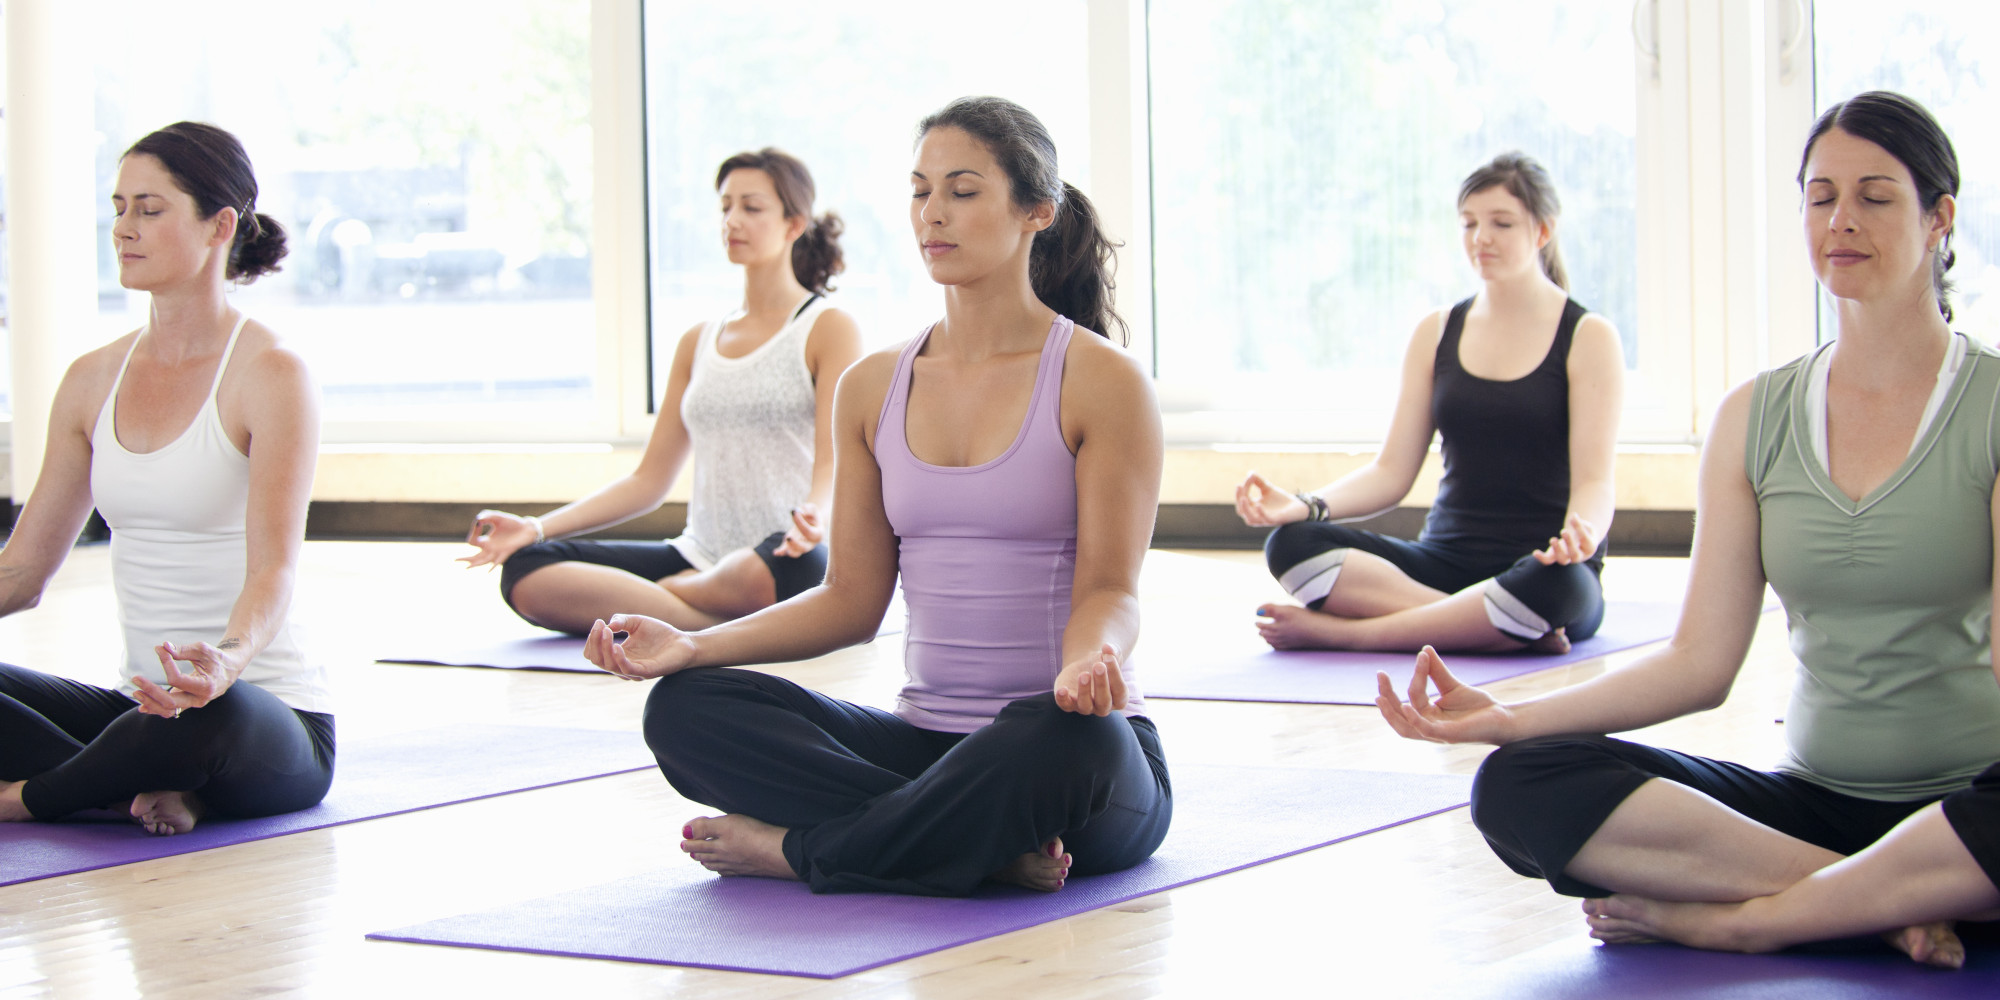 Image: Atrial fibrillation may be caused by stress: Research shows yoga improves quality of life for sufferers by lowering heart rate, blood pressure